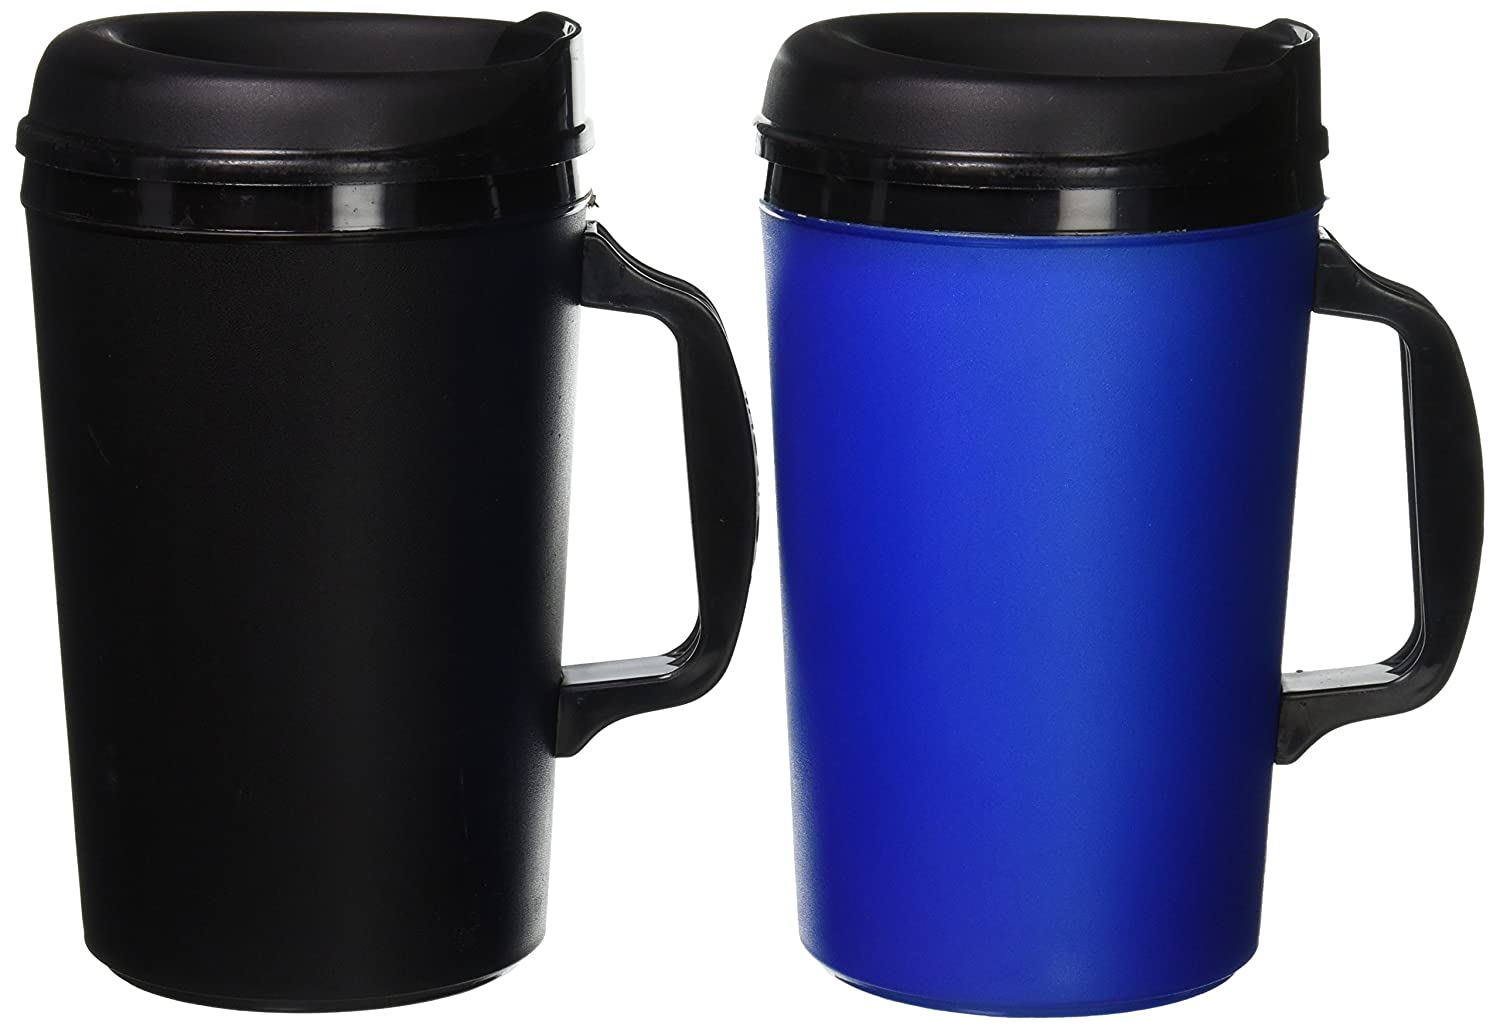 ThermoServ 2 Foam Insulated Coffee Mugs 34 oz (1) Blue & (1) Black 34ozblbk